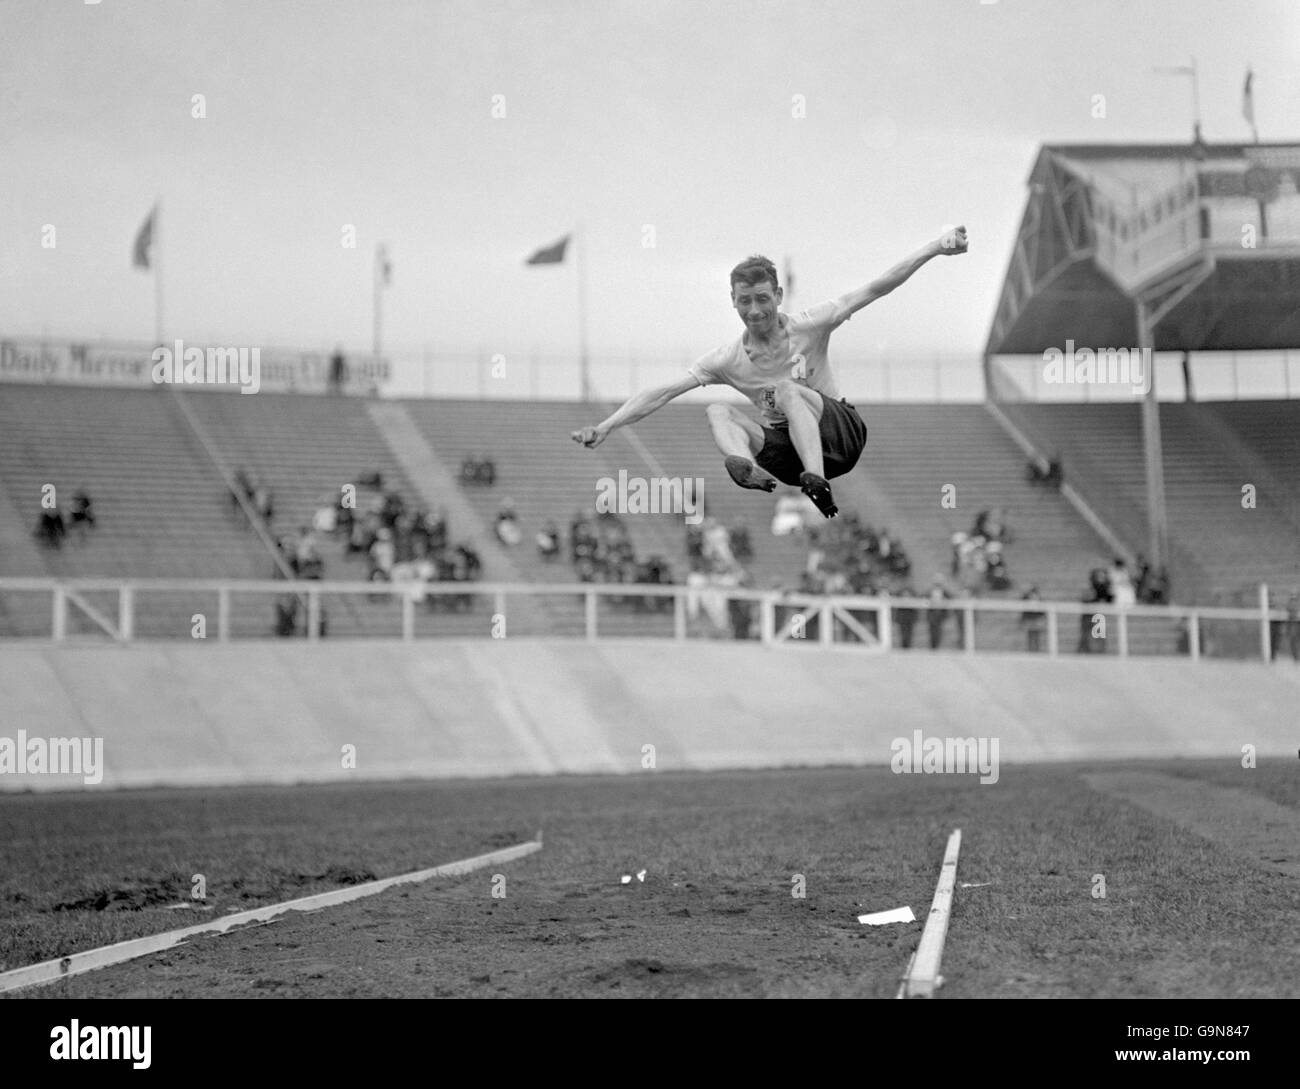 Athletics - London Olympic Games 1908 - Standing Long Jump - Heats - White City - Stock Image